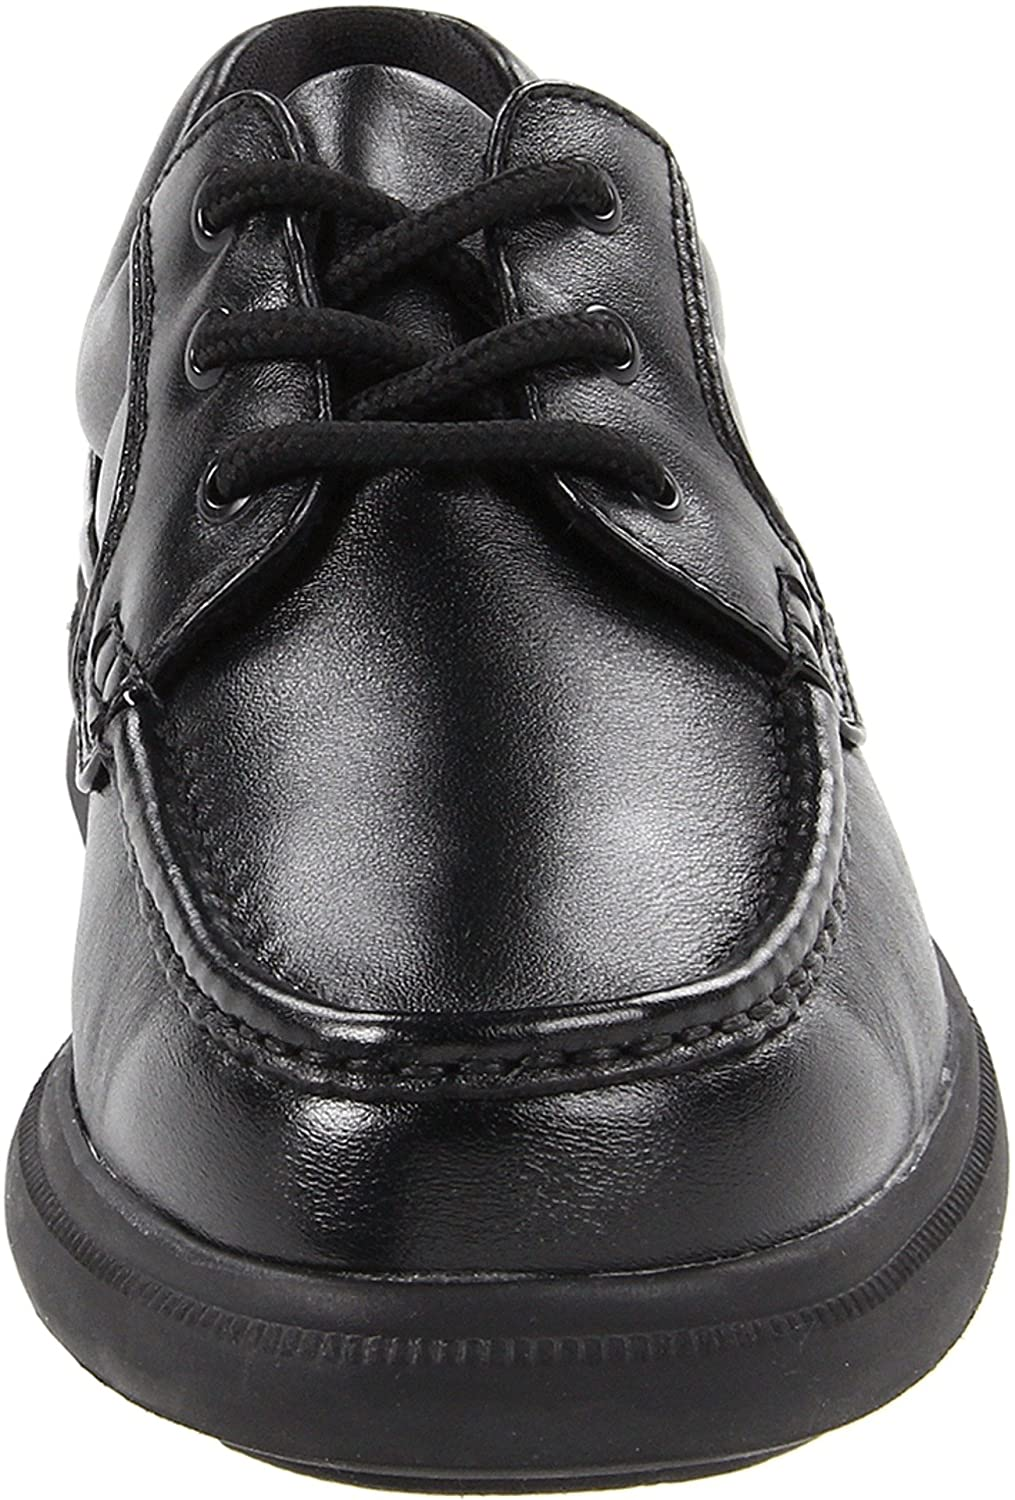 Hush Puppies Men's Gus Oxford B001AWY5N0 12 W US|Black Leather